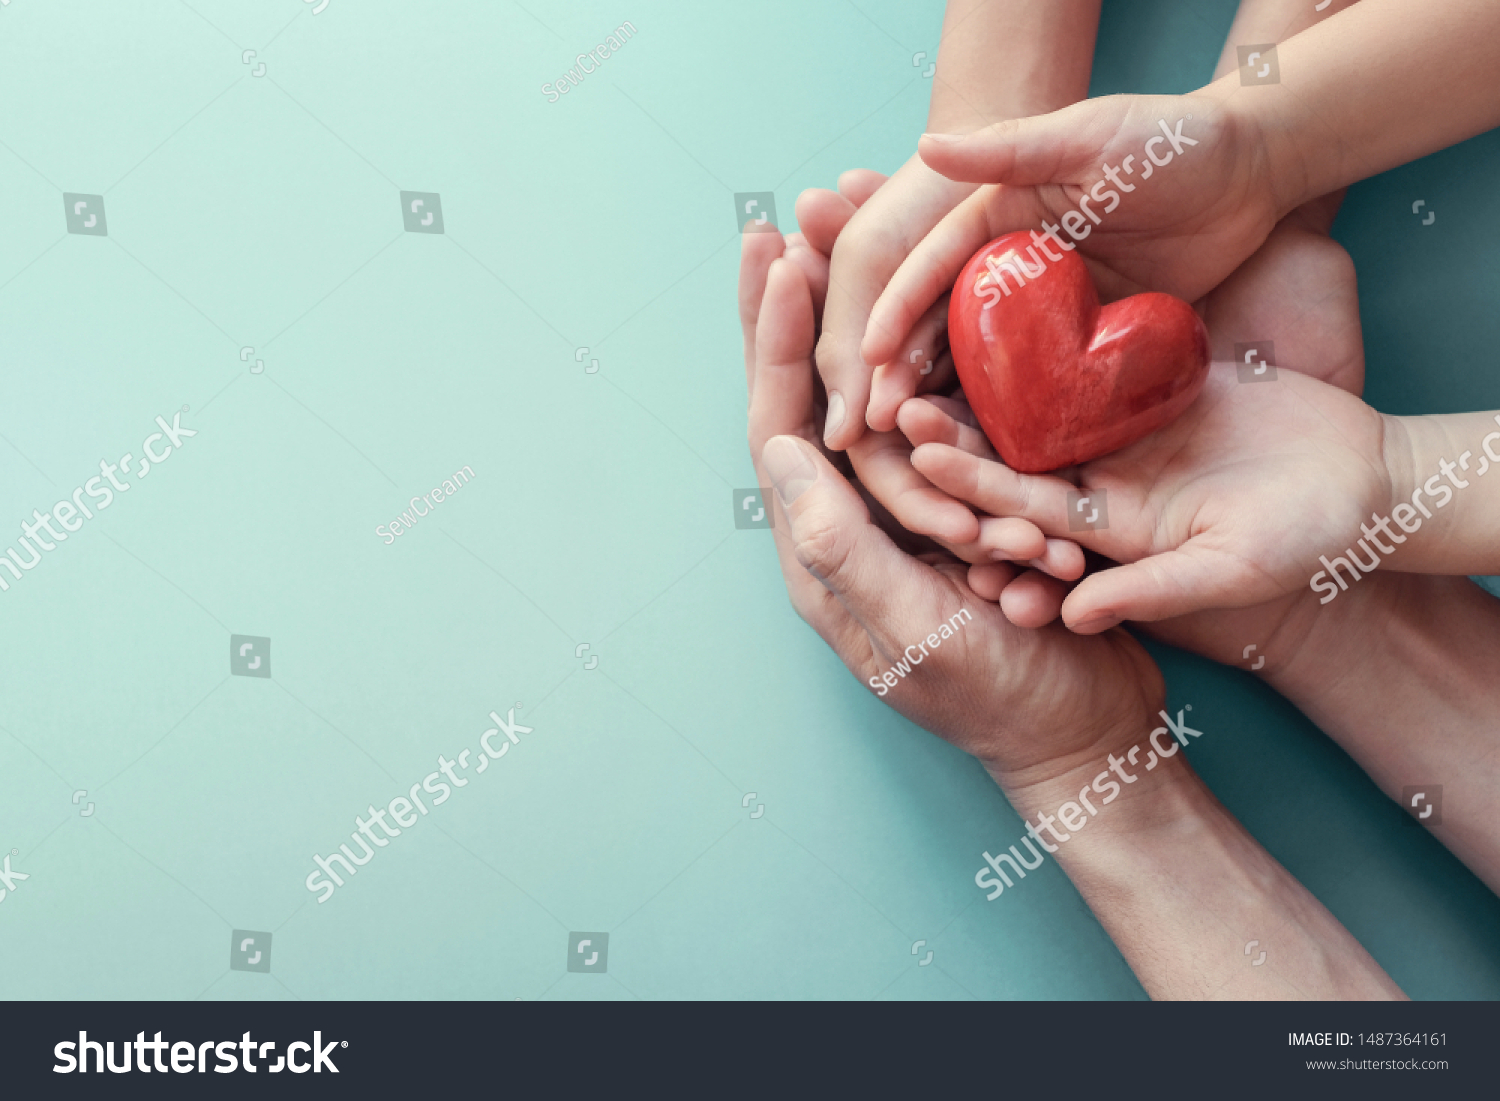 hands holding red heart, heart health, donation, happy volunteer charity, CSR social responsibility,world heart day, world health day,world mental health day,foster home concept #1487364161